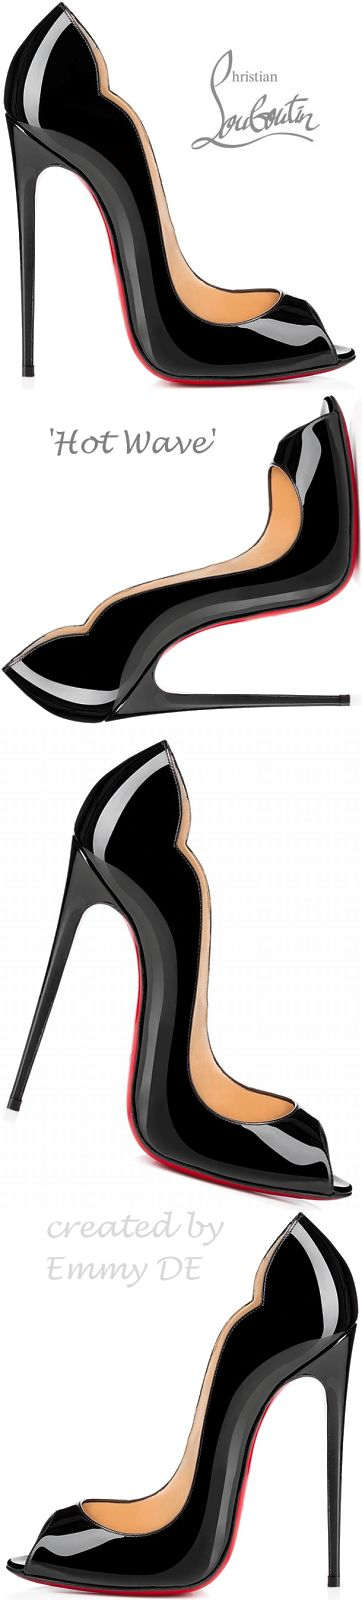 Brilliant Luxury by Emmy DE * Christian Louboutin 'Hot Wave' Spring 2015: